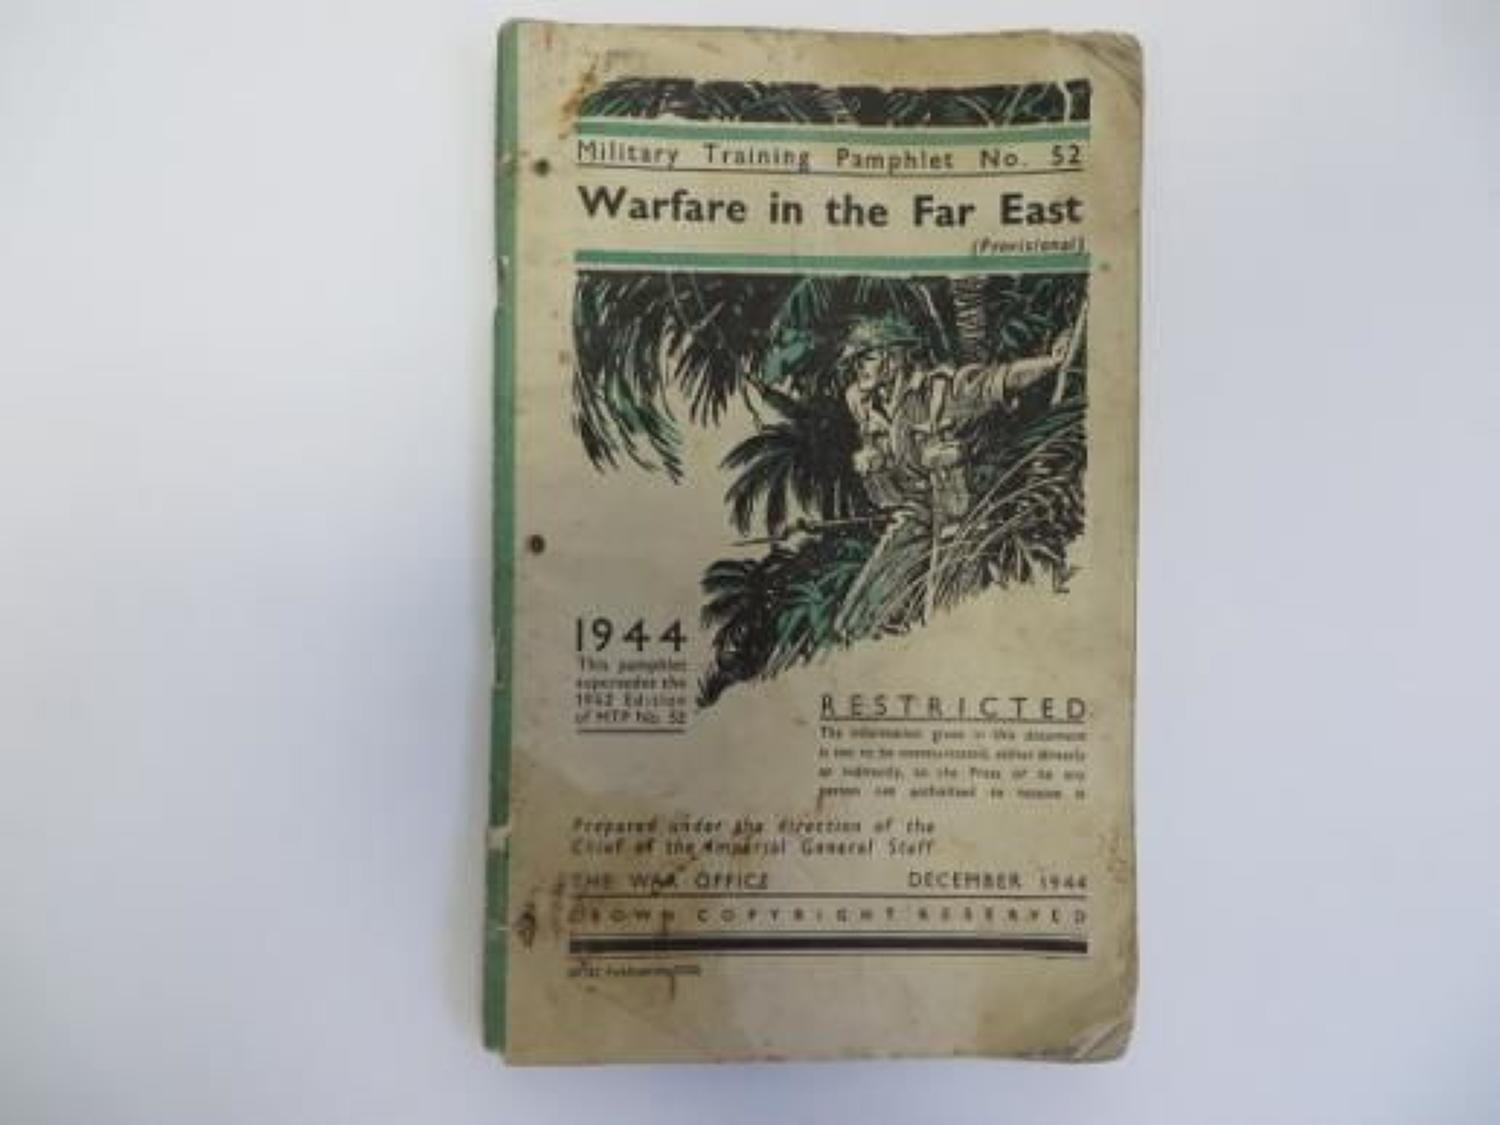 Rare 1944 Warfare in the Far East No52 Pamphlet